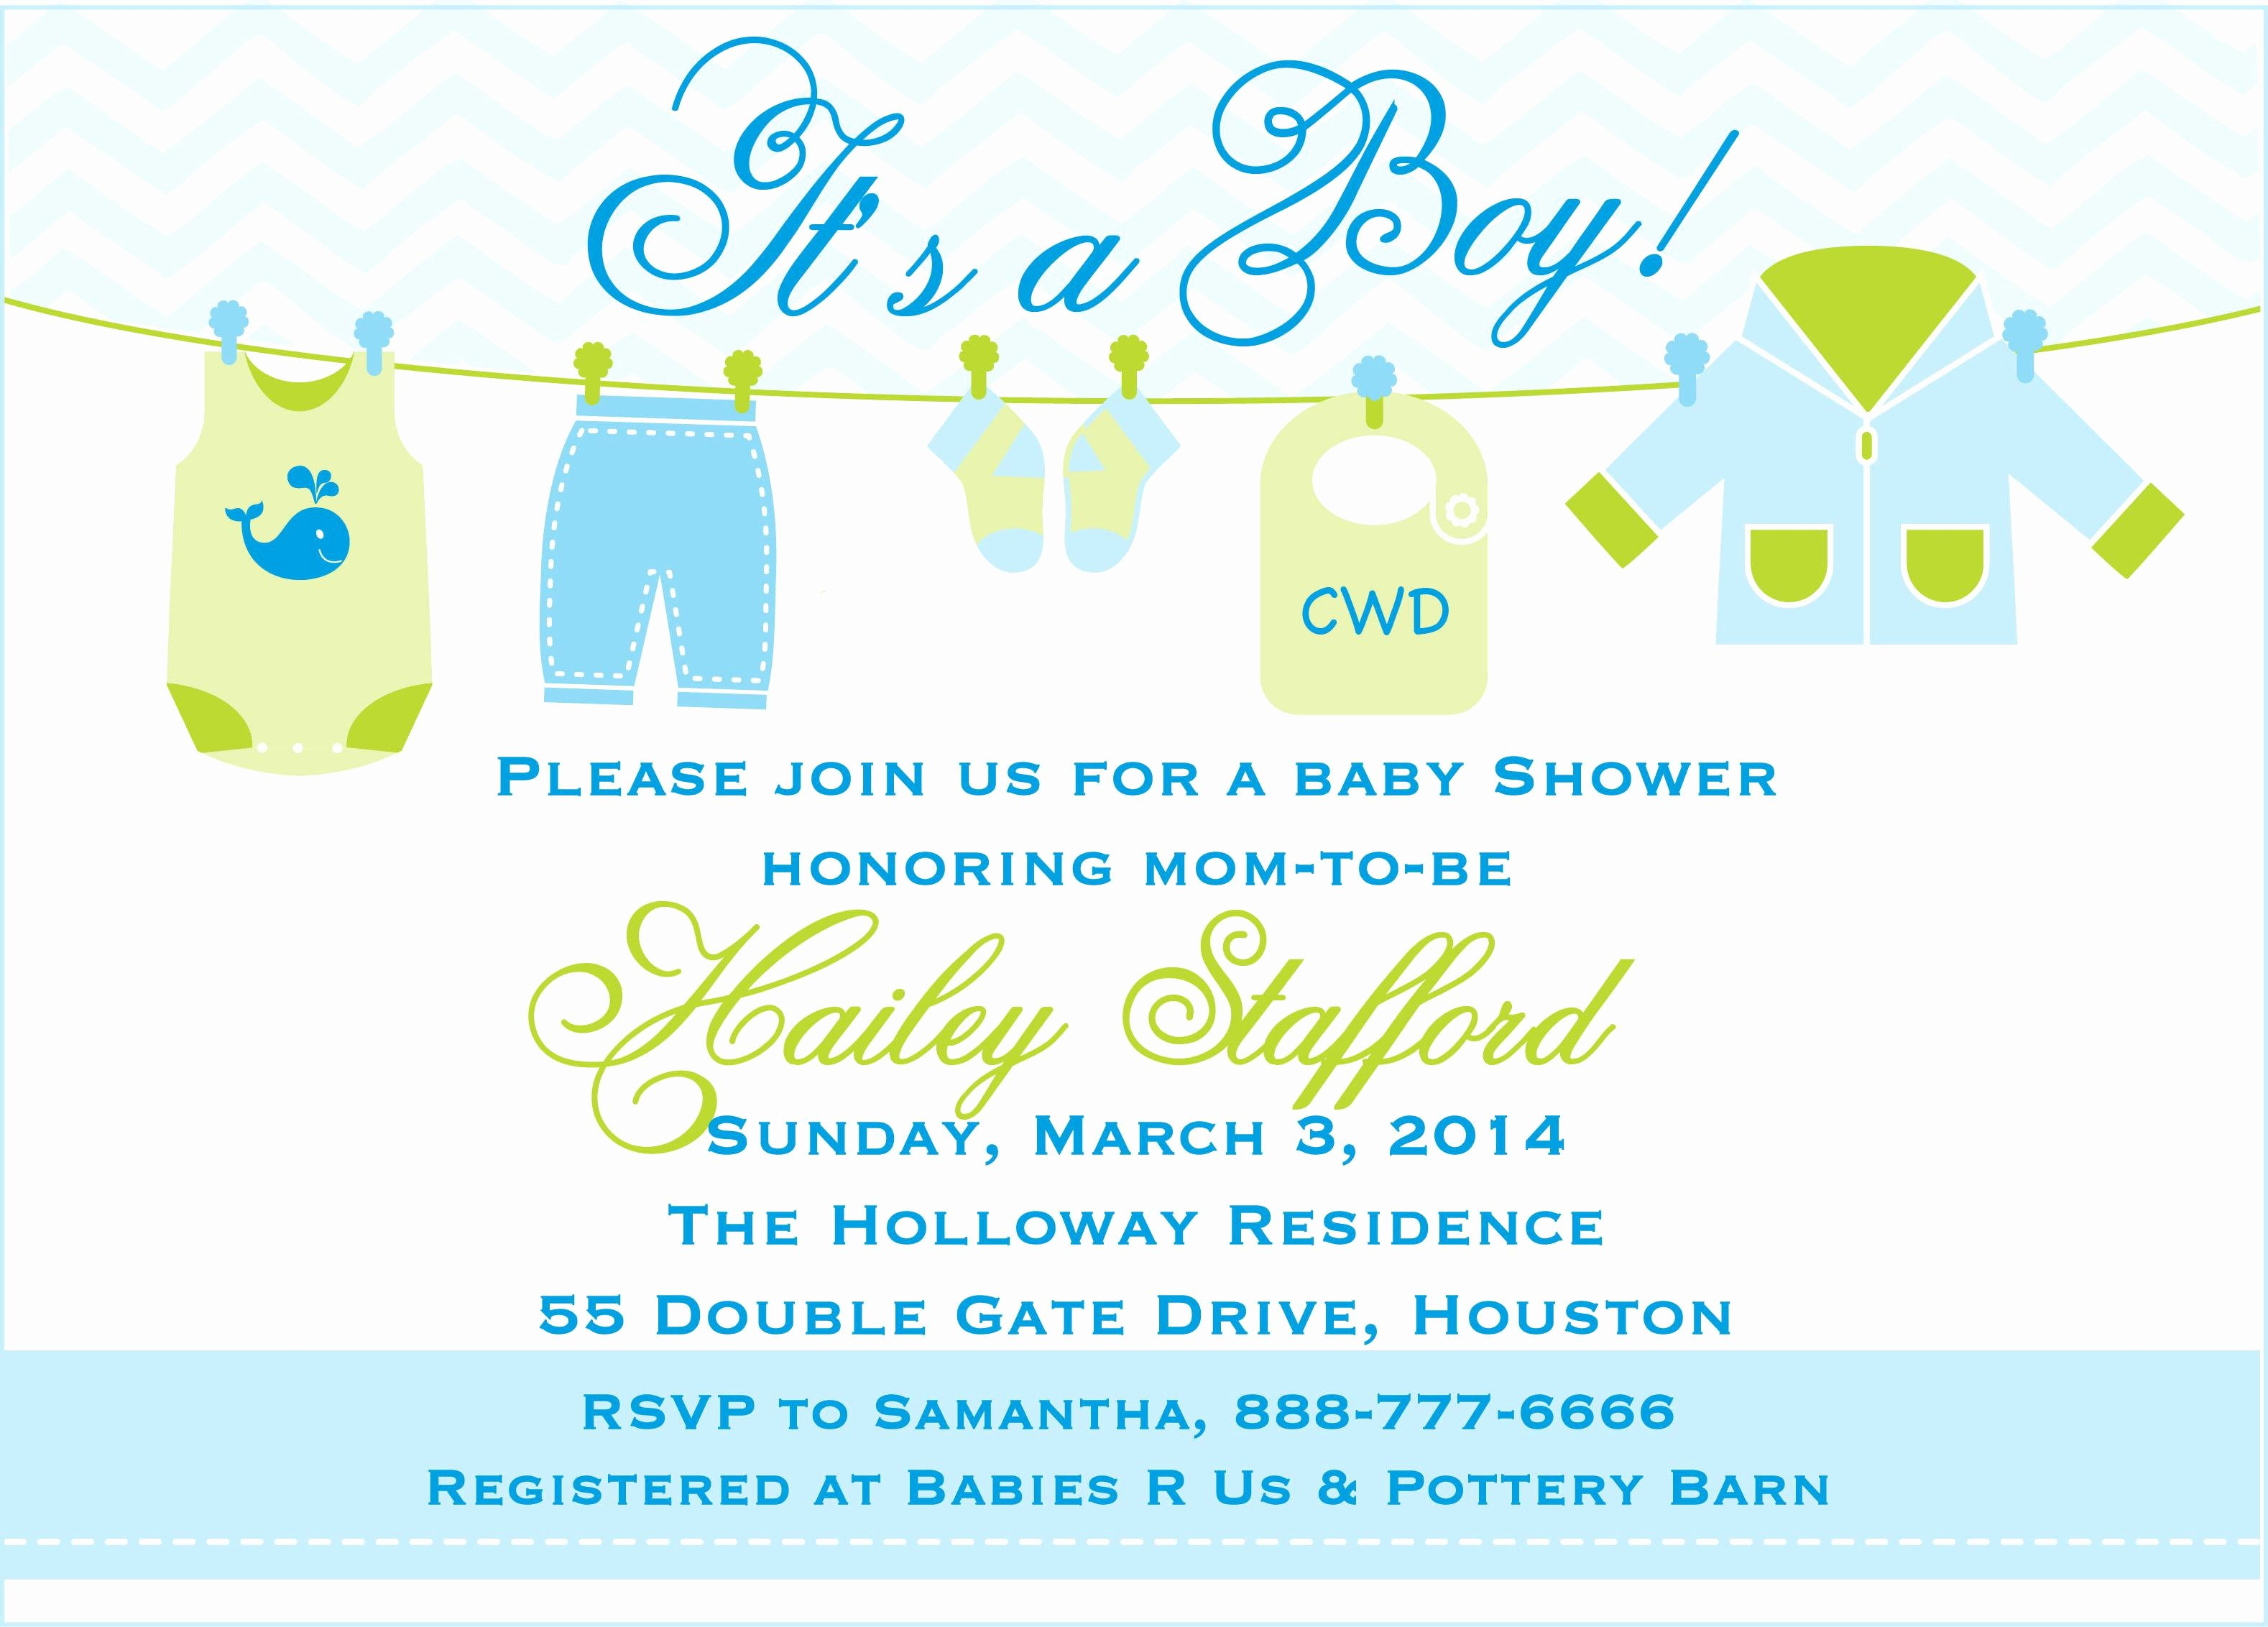 Baby Boy Invitations Free Luxury Free Printable Baby Shower Invitations Templates for Boys